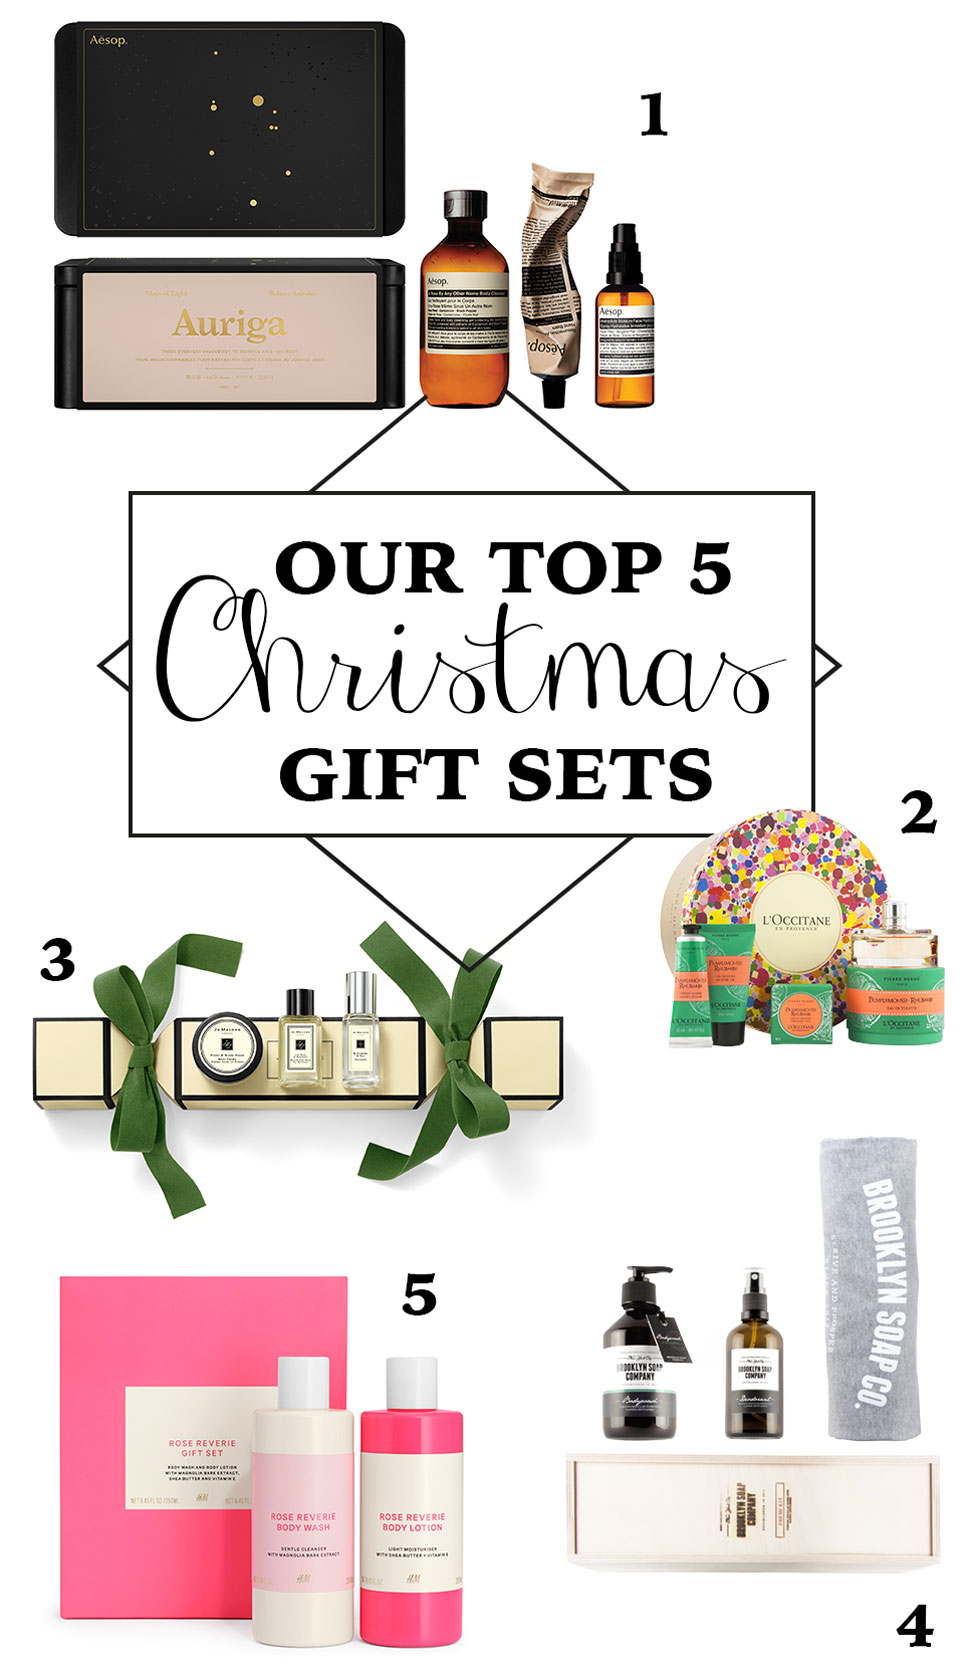 The Look & Like - Our Top 5 Christmas Gift Sets